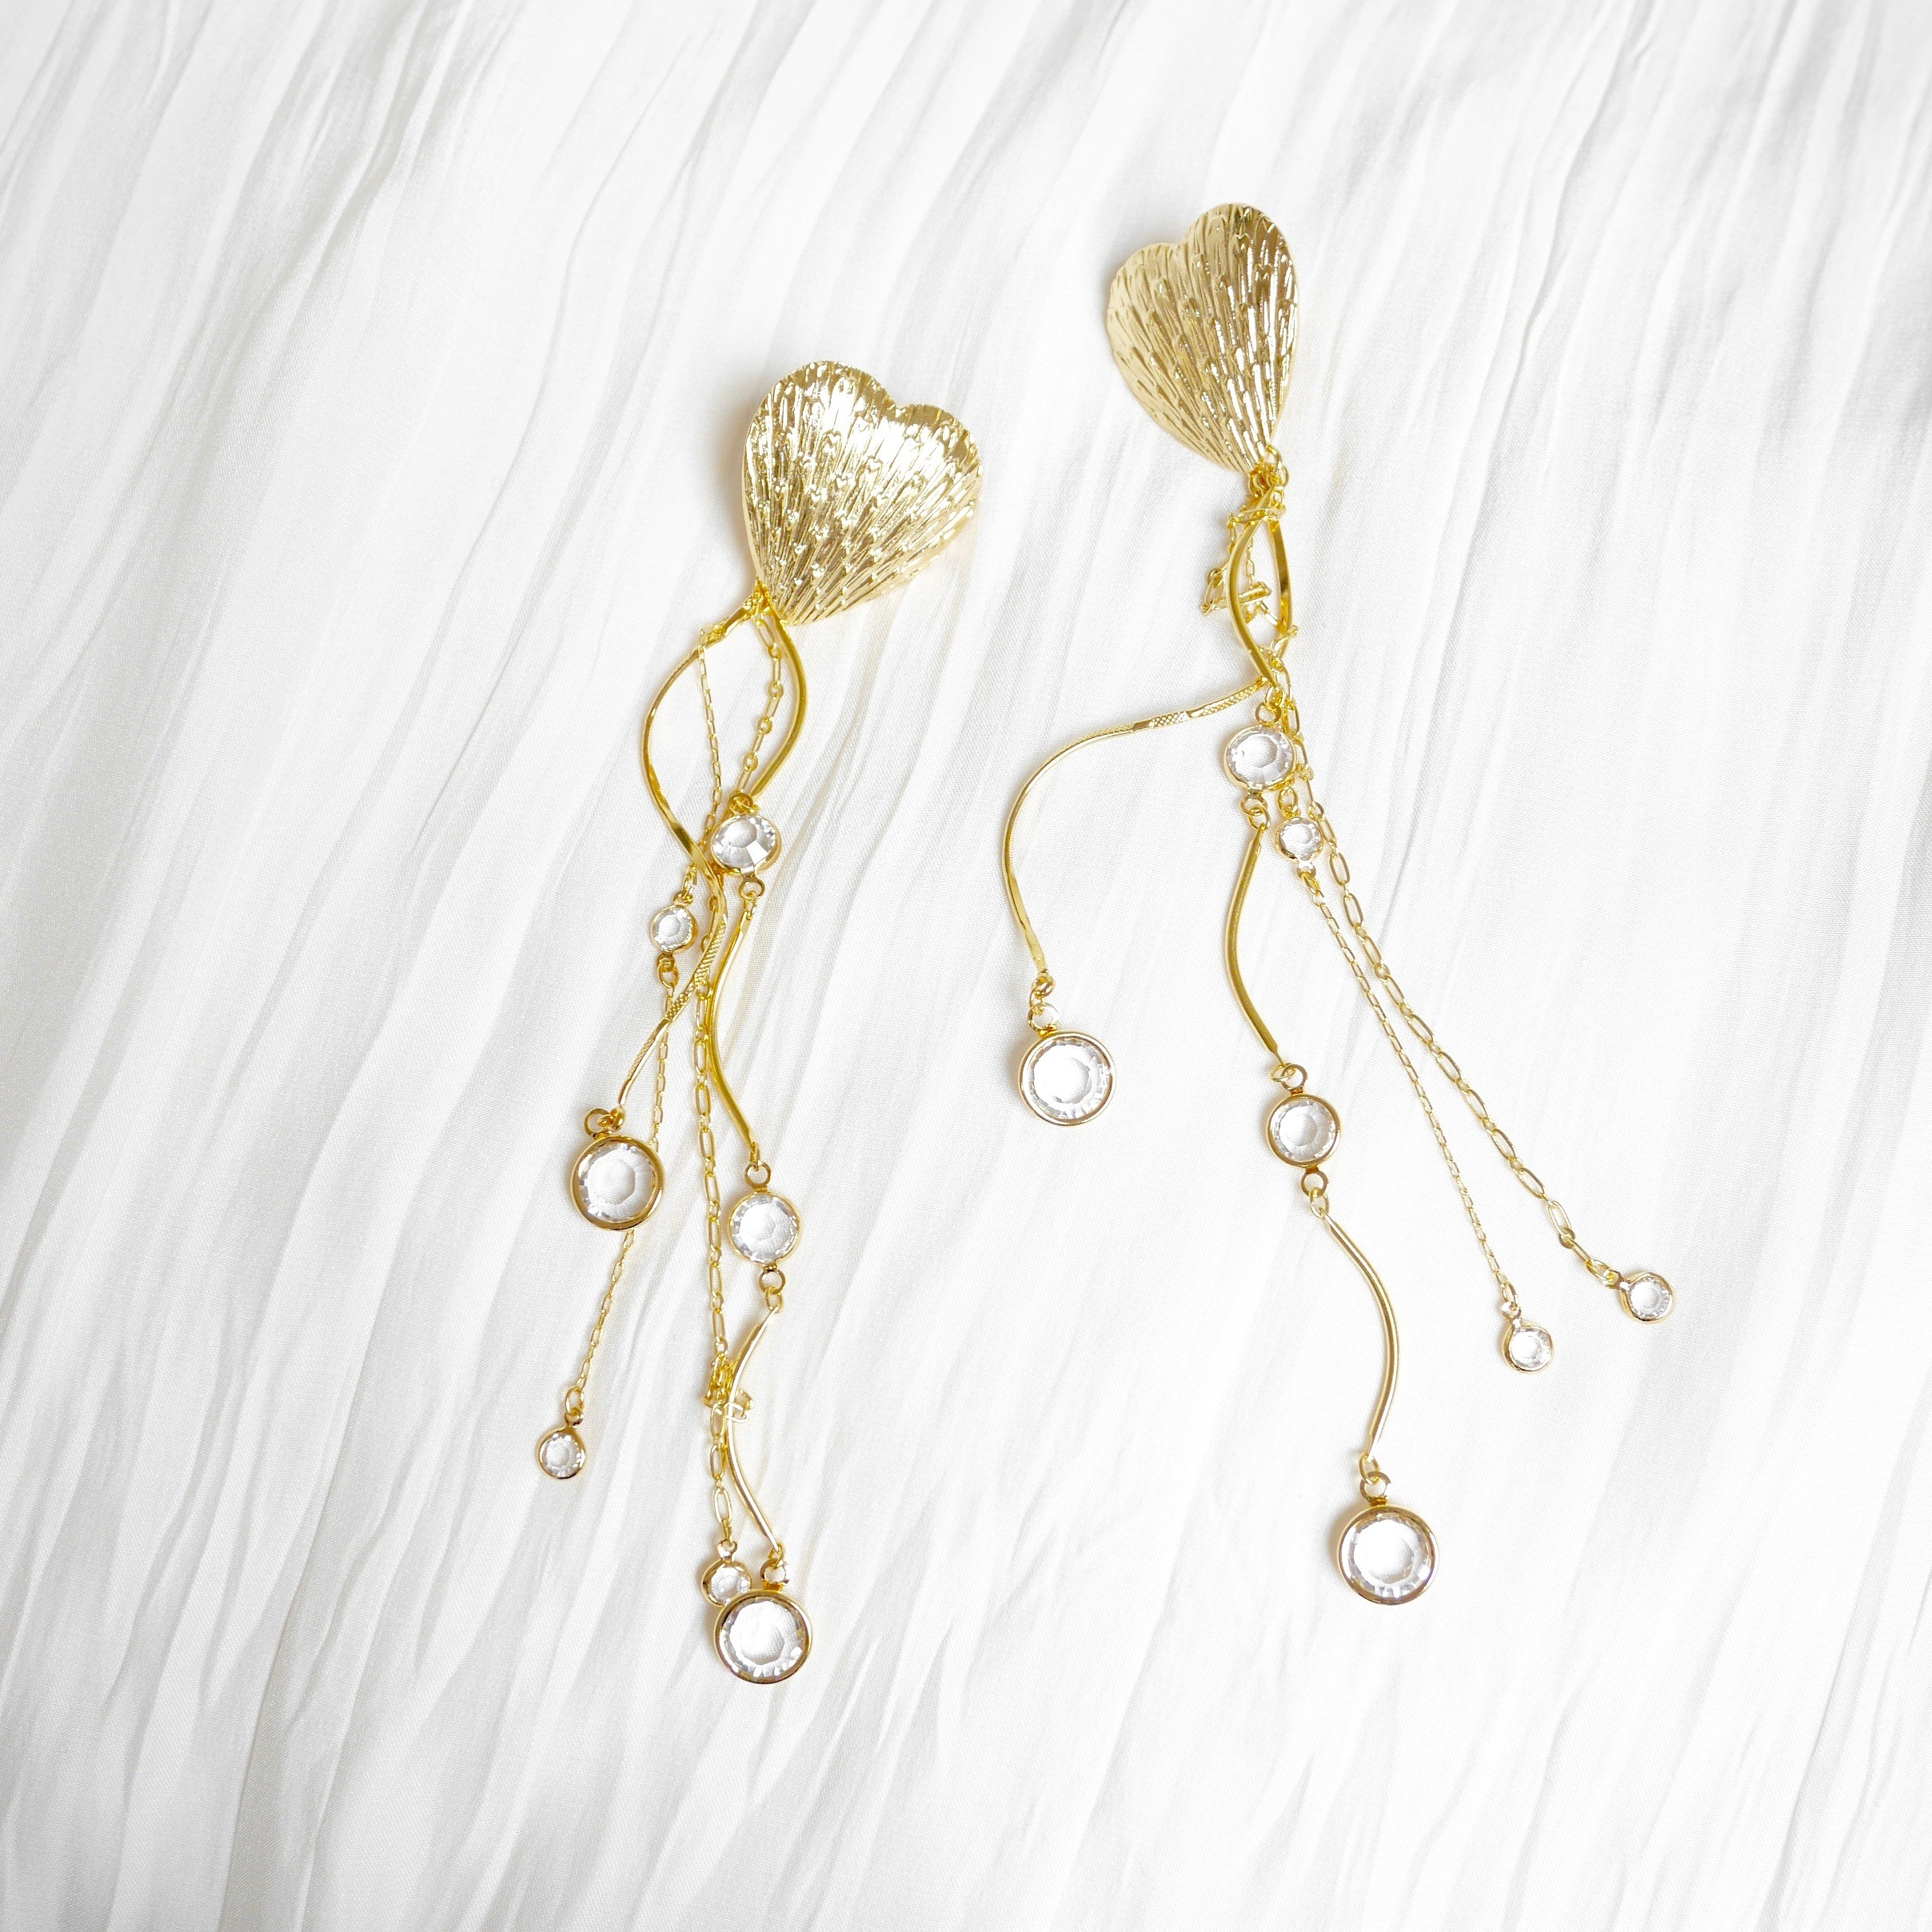 HEART-TWISTINGREED EARRING